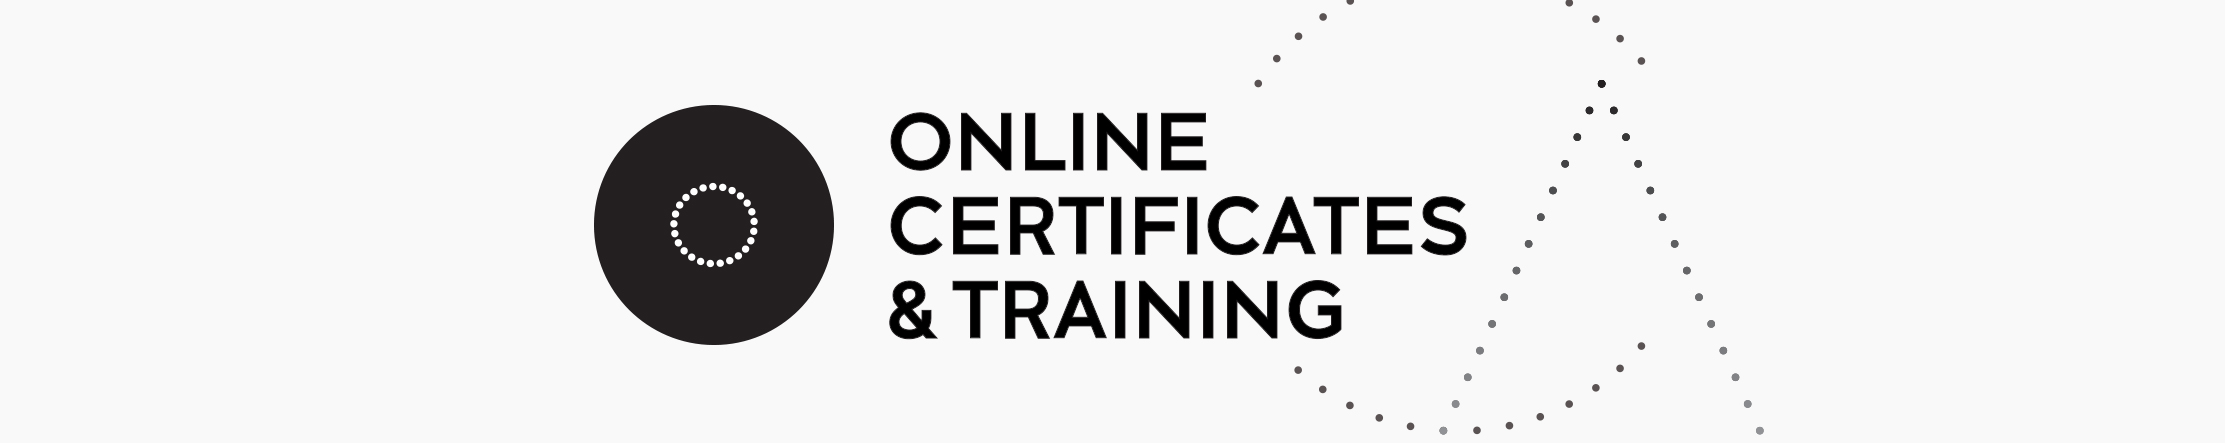 Online Certificates & Training | UNSW Business School